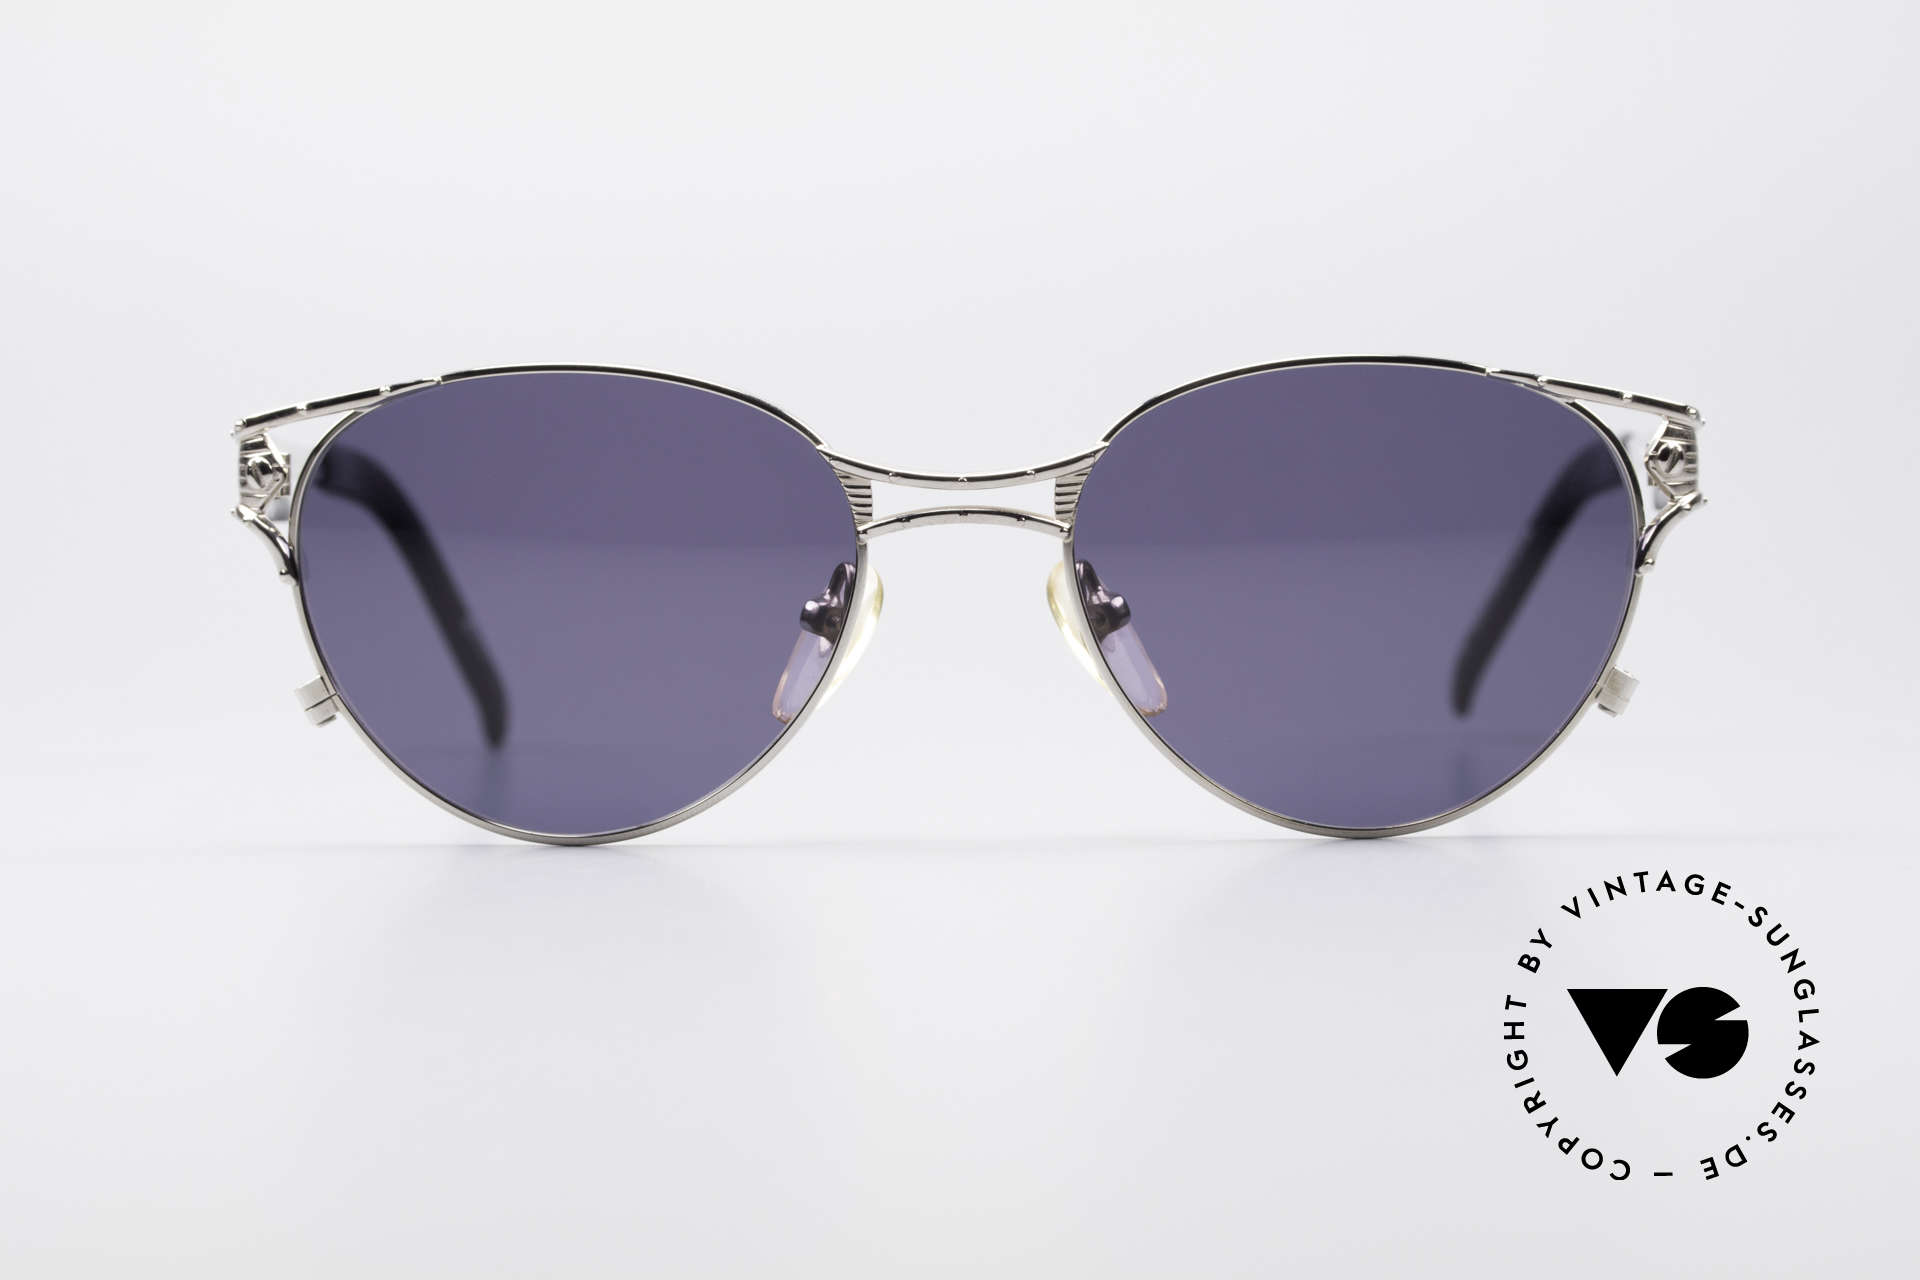 77dd5b19eb91 Sunglasses Jean Paul Gaultier 56-4179 No Retro Designer Glasses ...